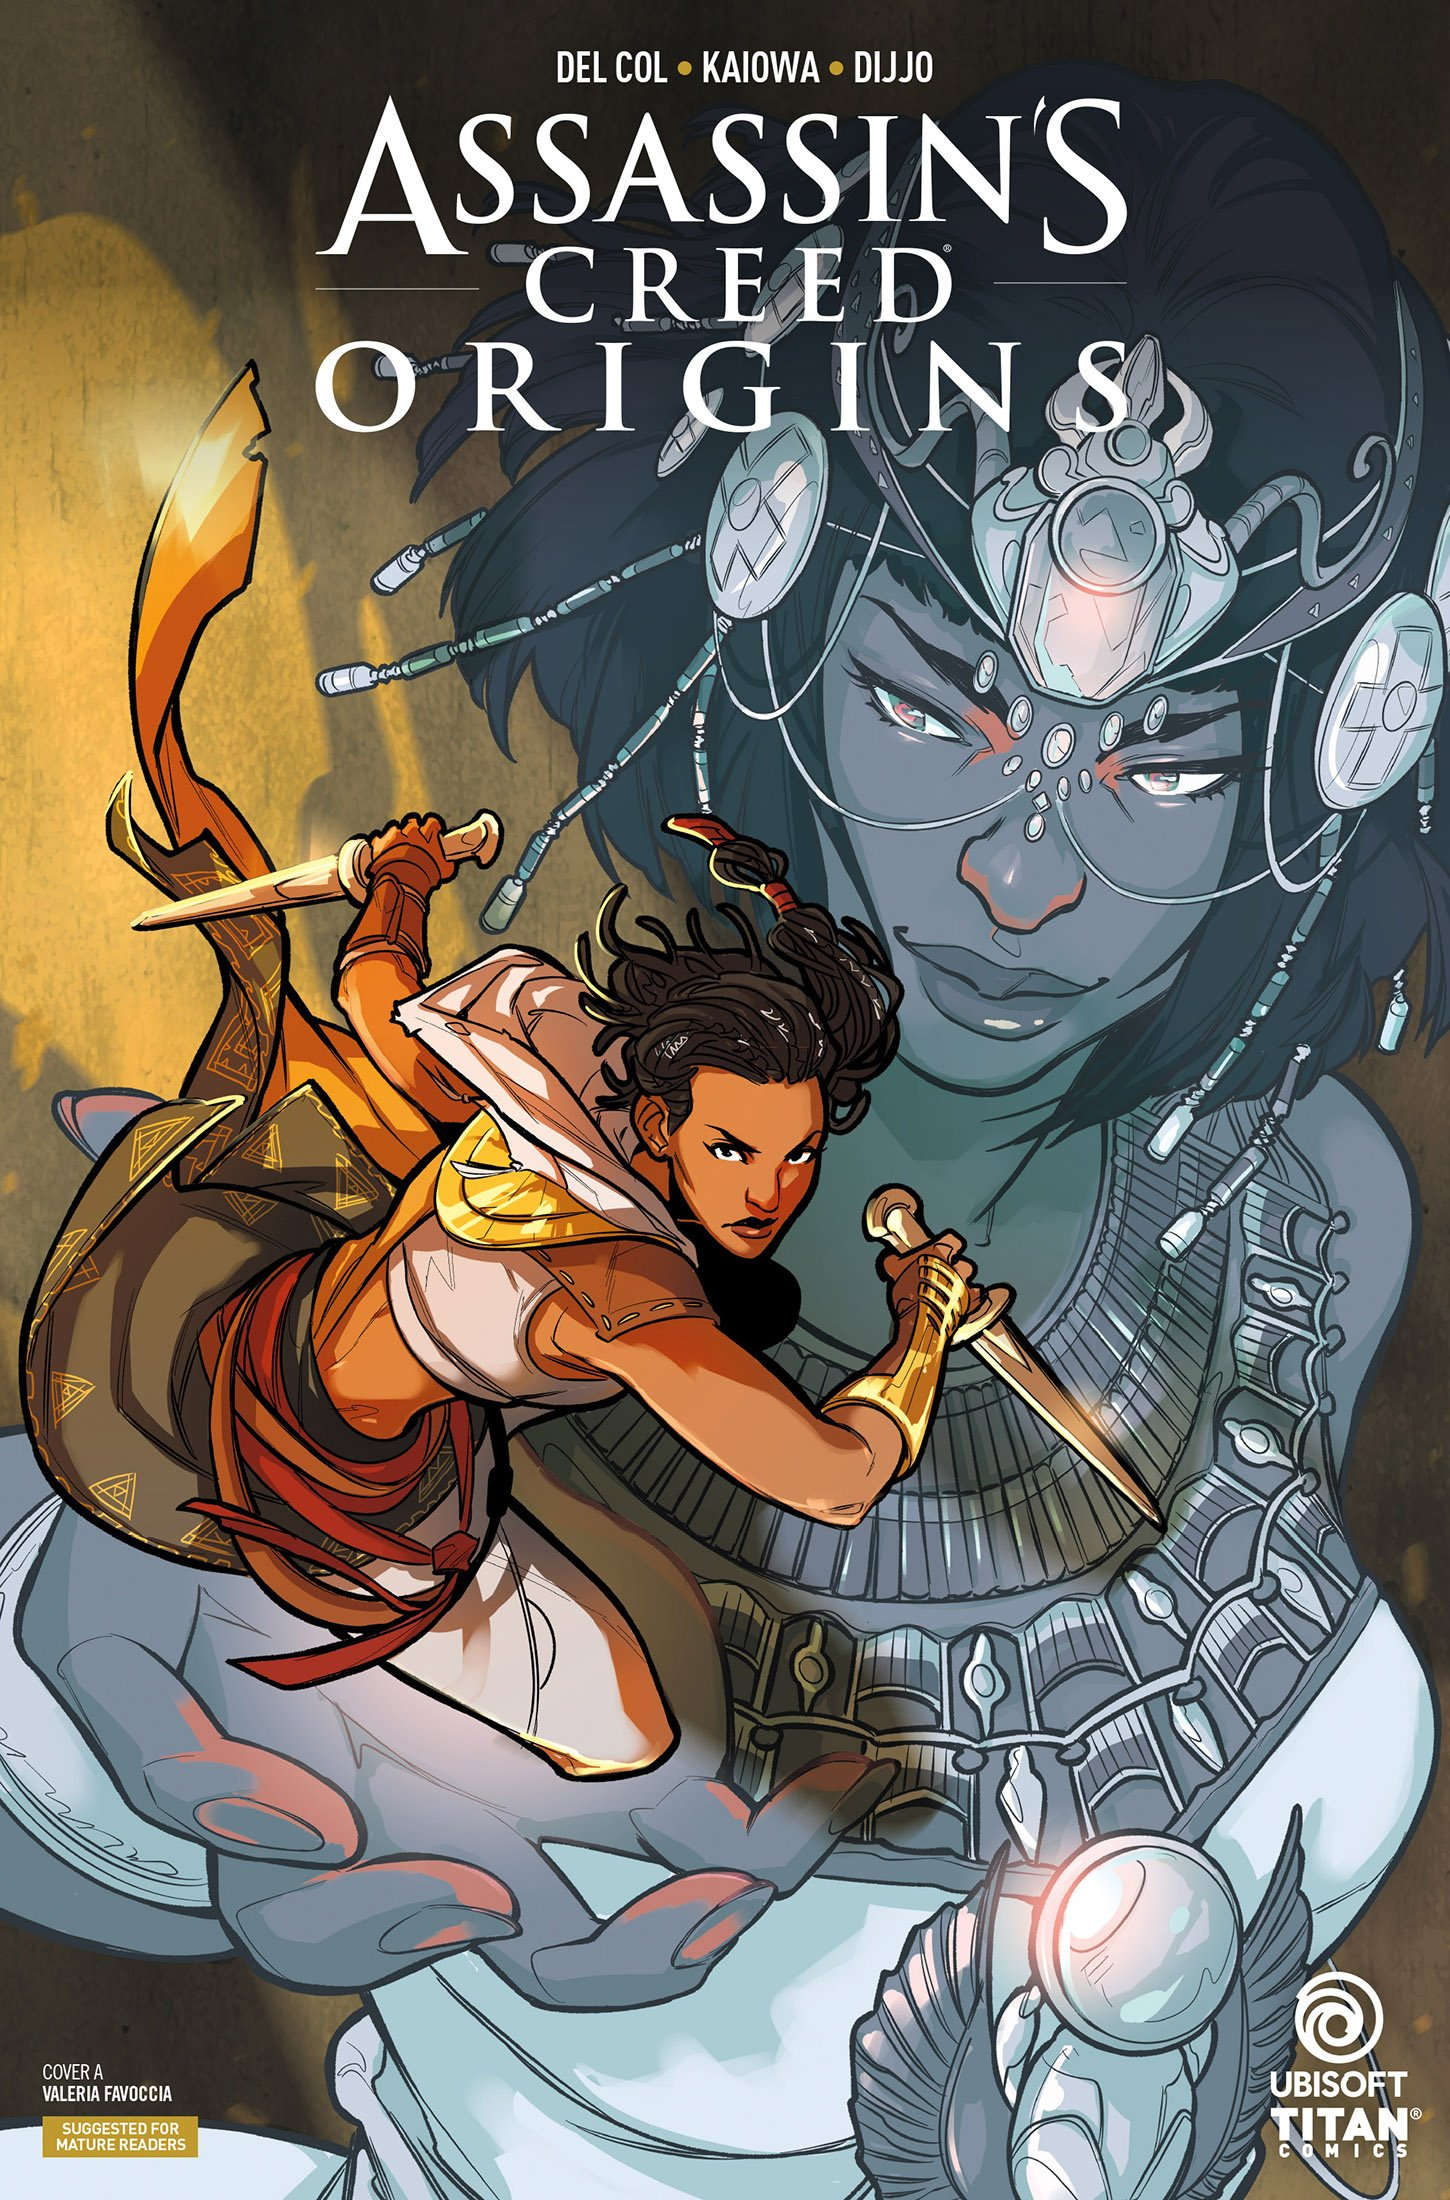 Assassin's Creed - Origins 04 (July 2018) (cover a)